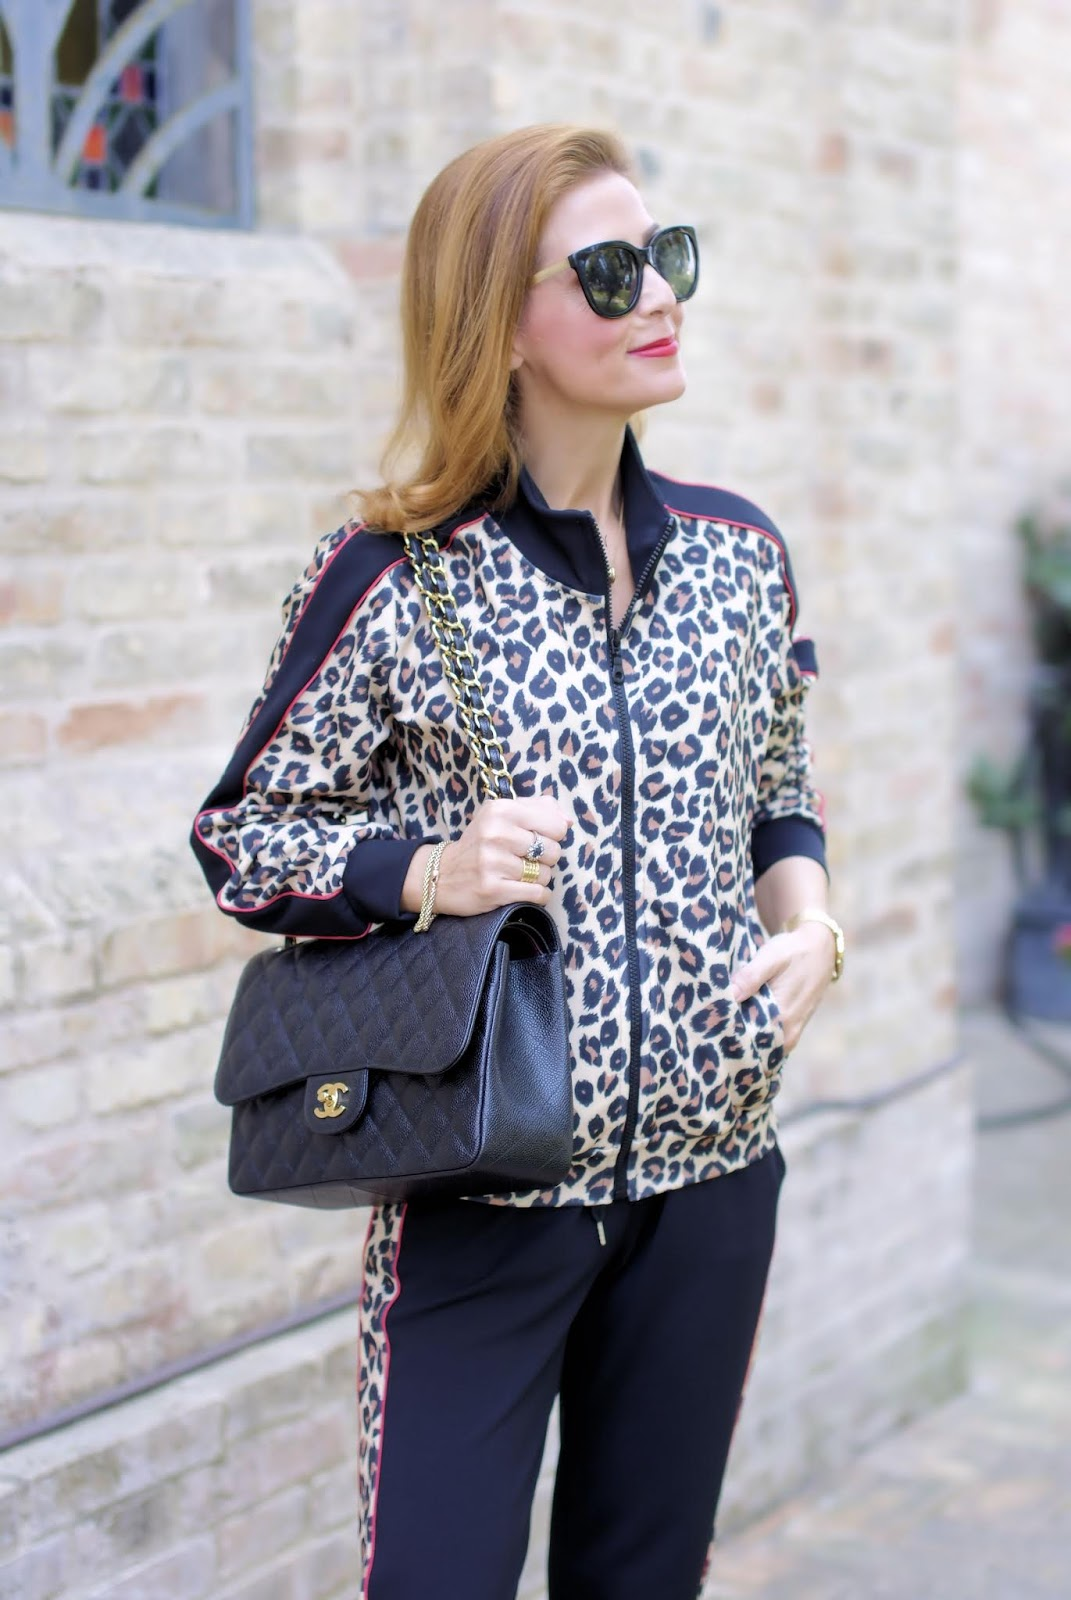 The animal print trend: leopard print tracksuit and Chanel bag on Fashion and Cookies fashion blog, fashion blogger style